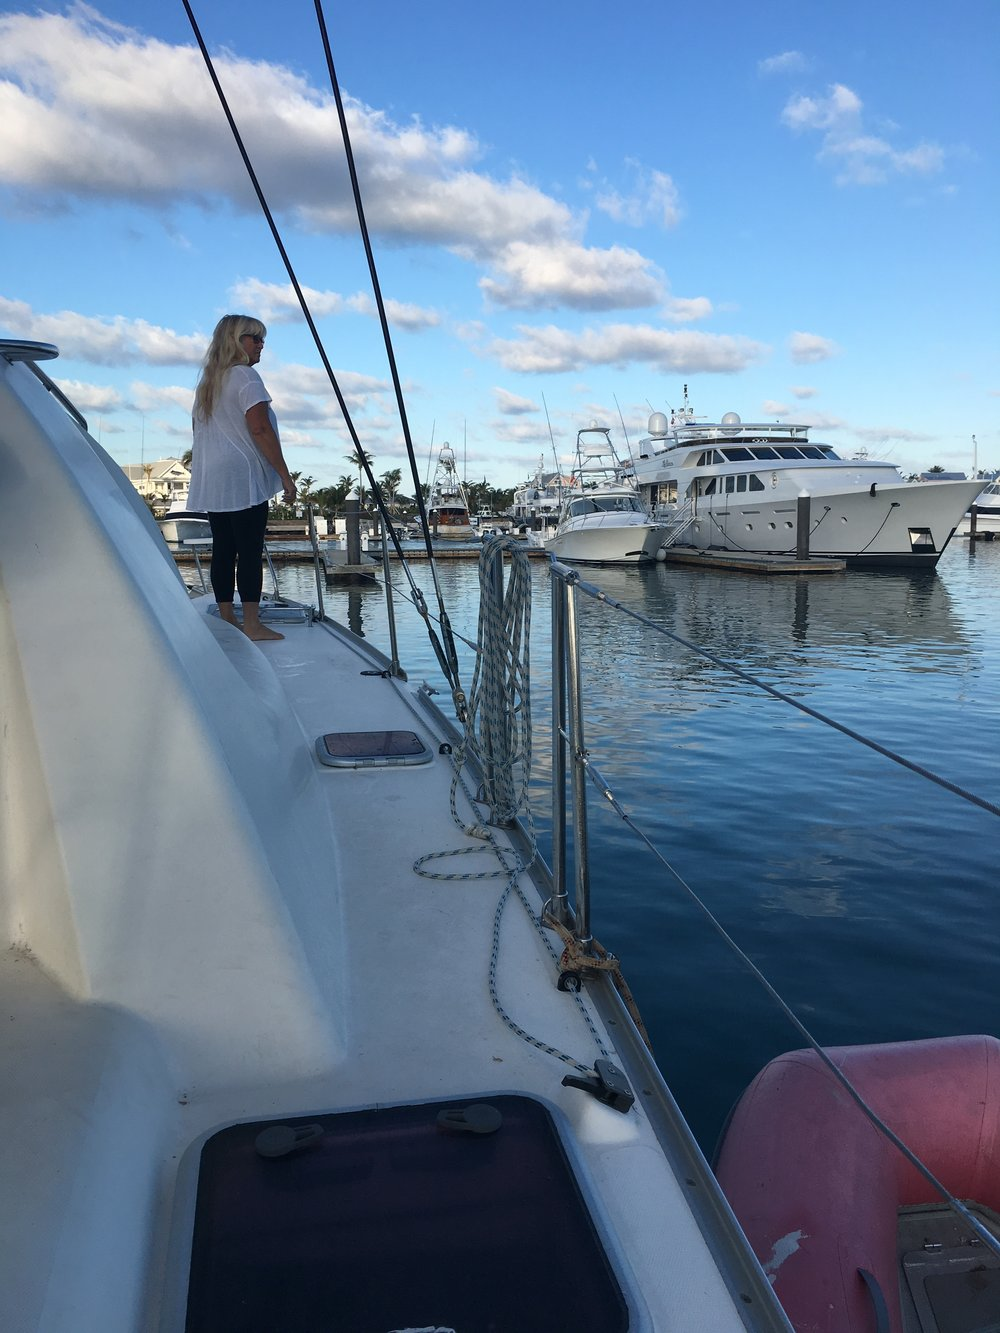 Surveying the sports fishing yachts in Chub Cay marina while  Mystique  seeks repairs.